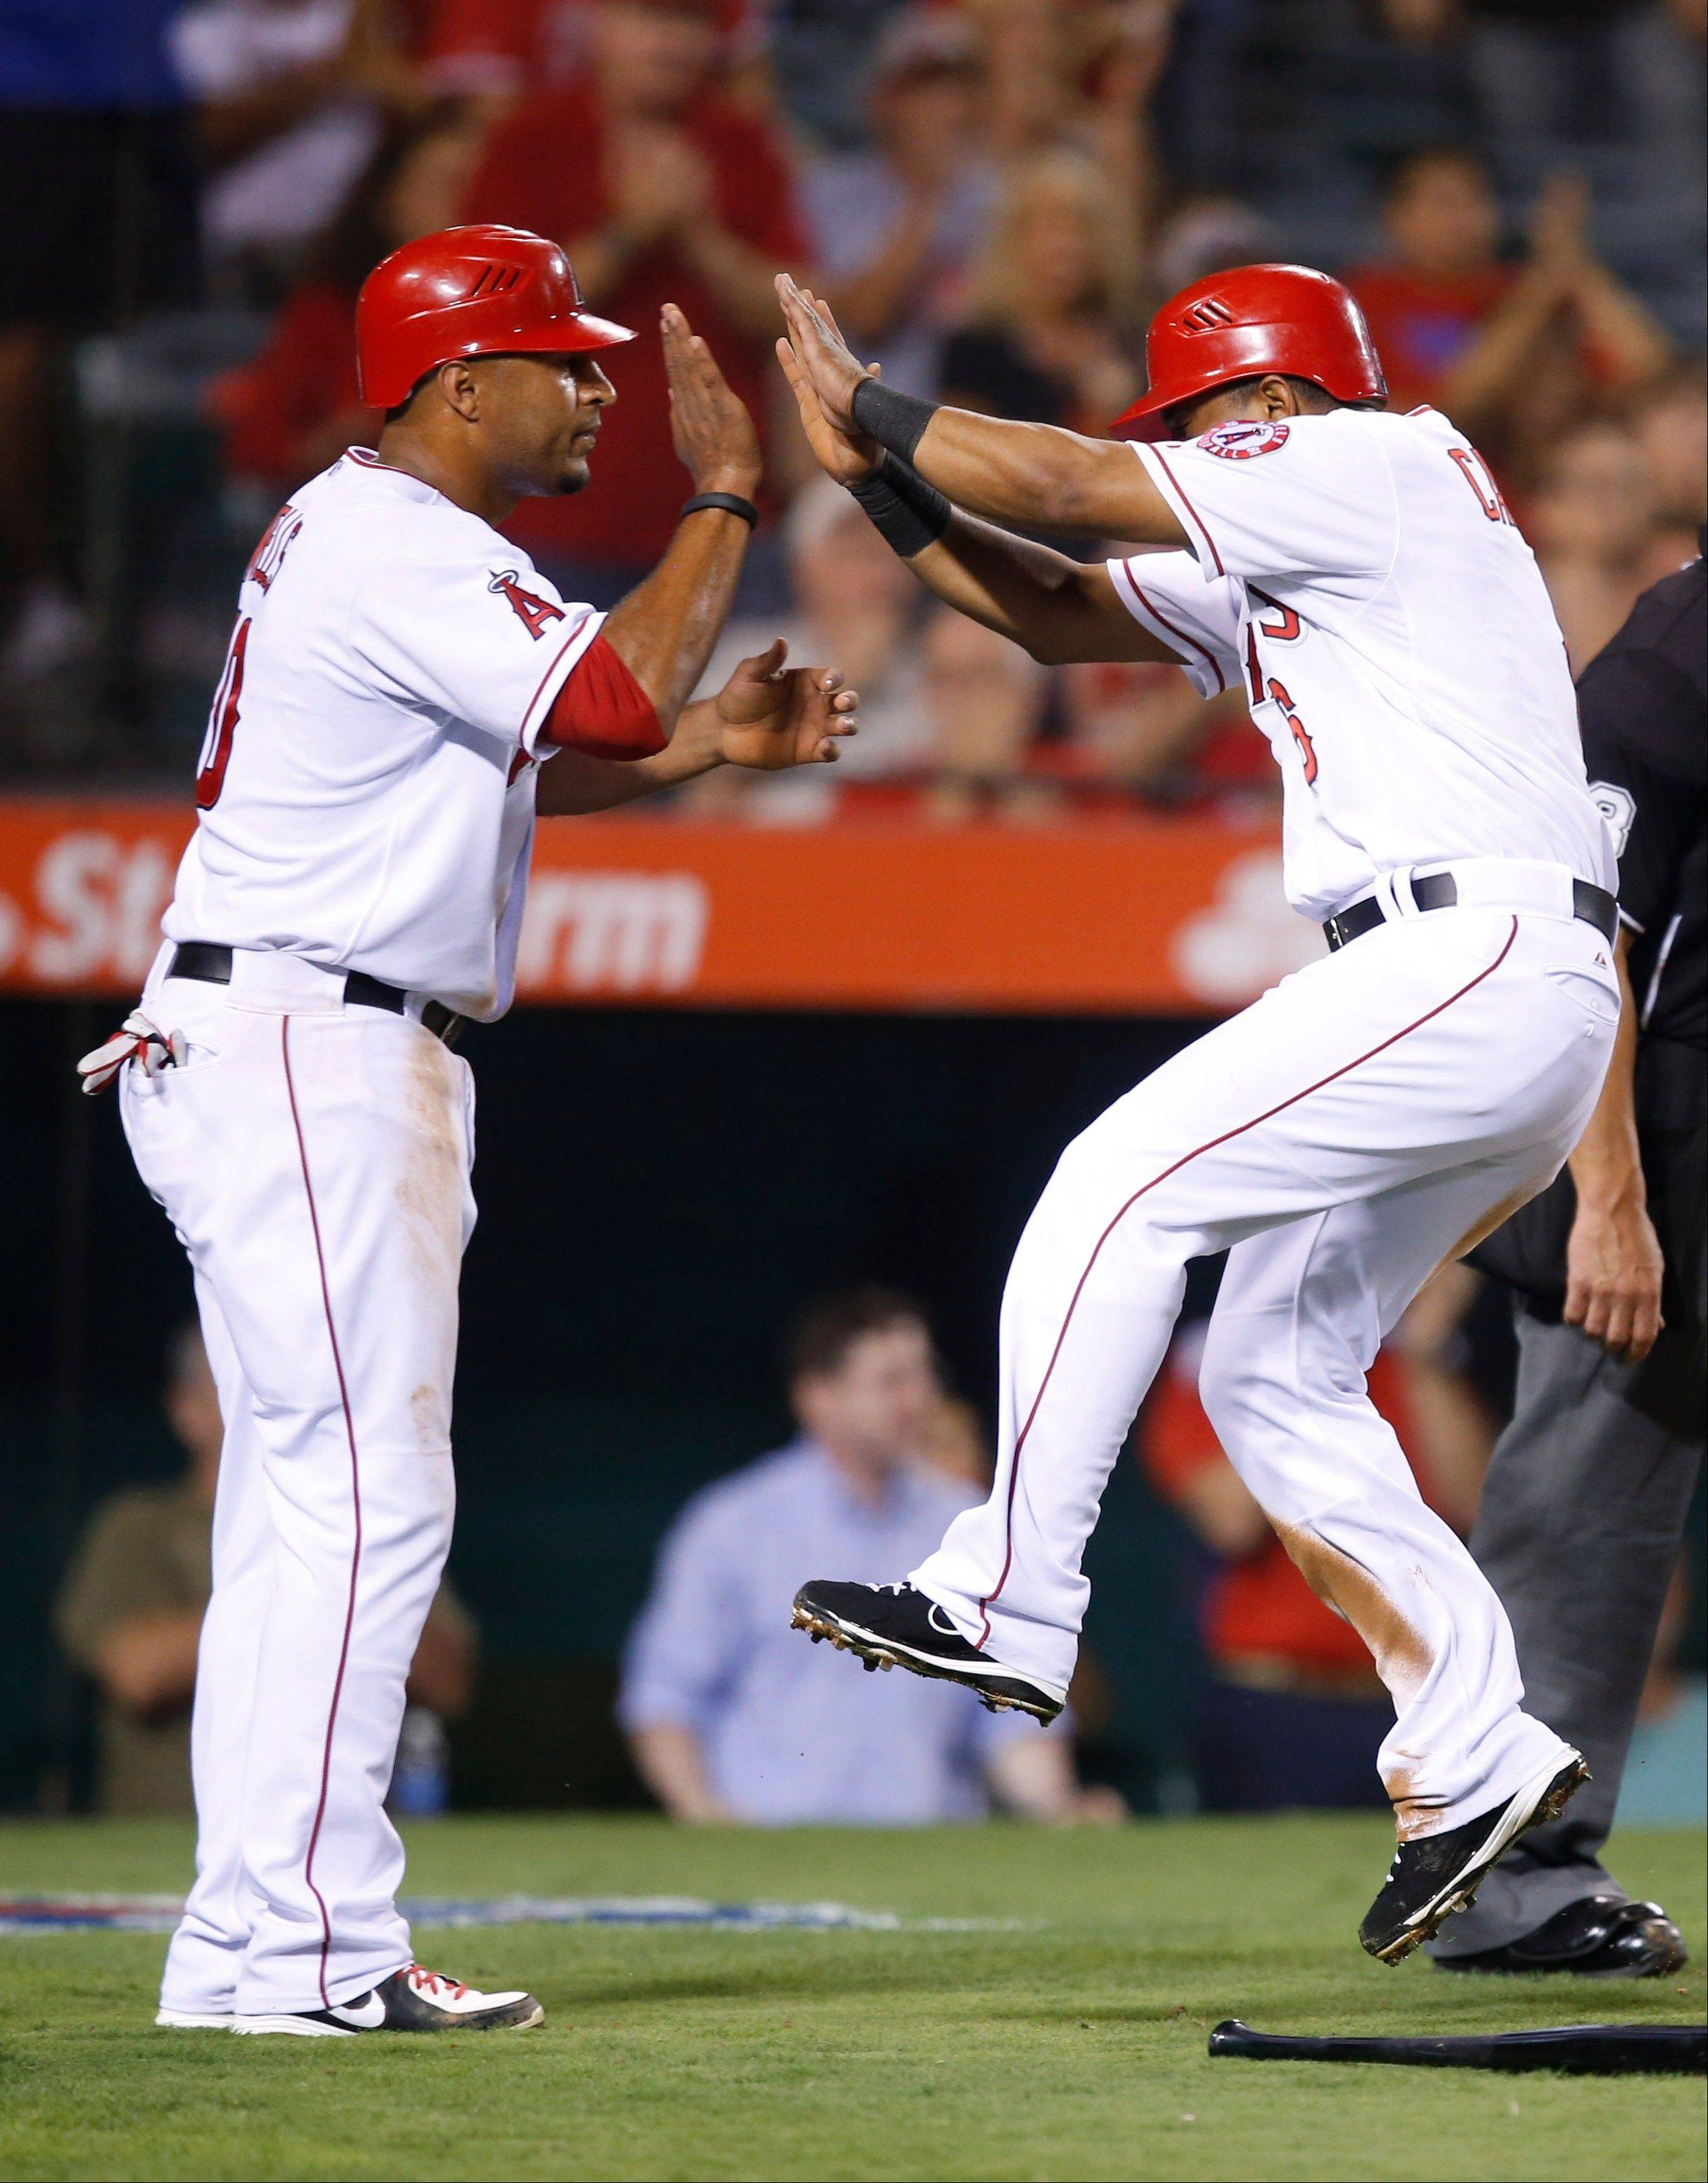 The Angels' Vernon Wells, left, and Alberto Callaspo celebrate after they scored on a single by Chris Iannetta in the fourth inning Tuesday at home against the Rangers.